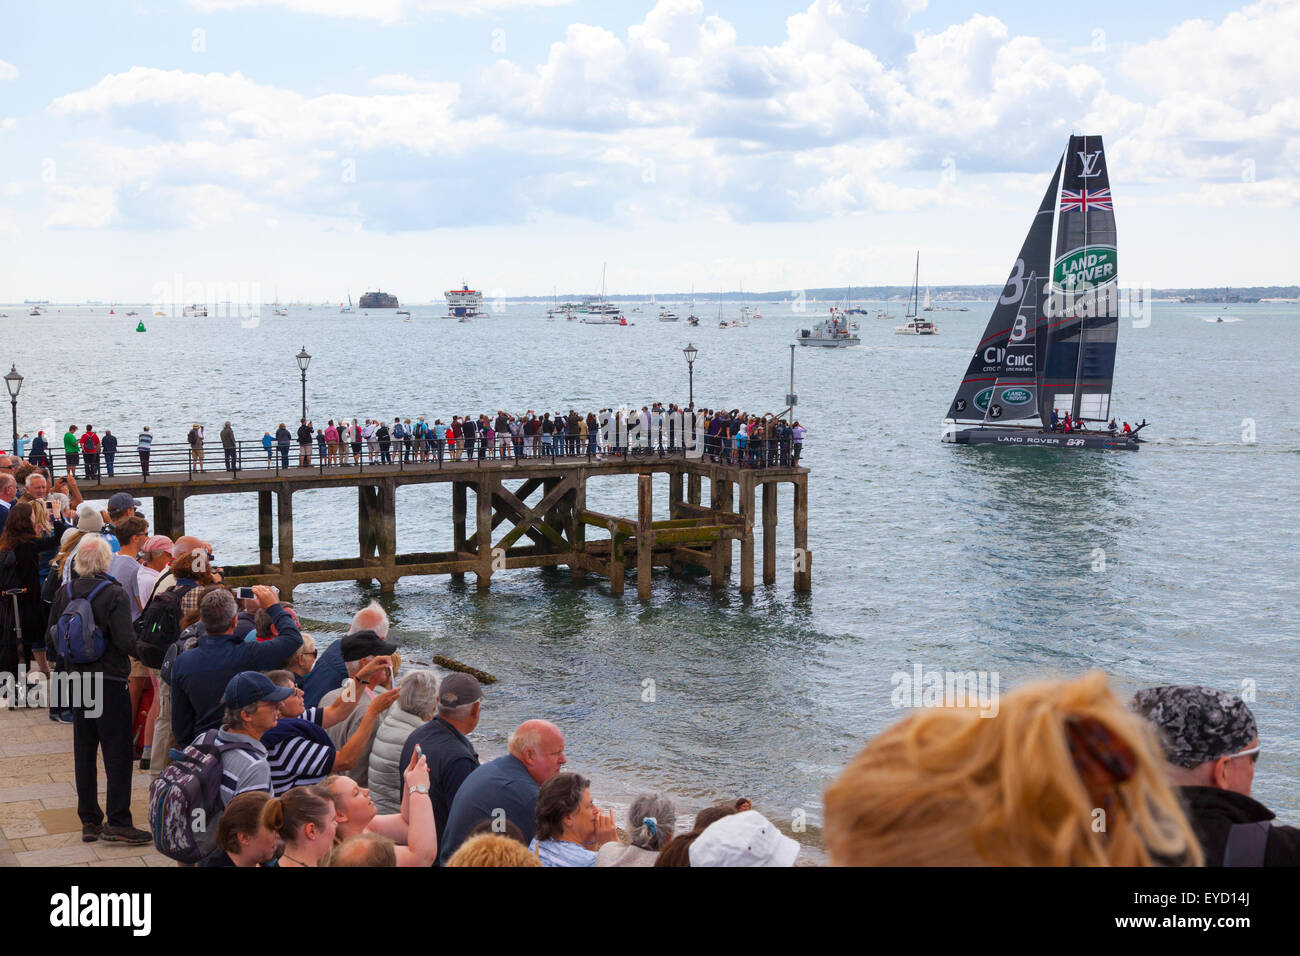 Admirals Cup races off Portsmouth on Saturday 25 July 2015 The UK Land Rover BAR  yacht salutes the gathered crowds - Stock Image